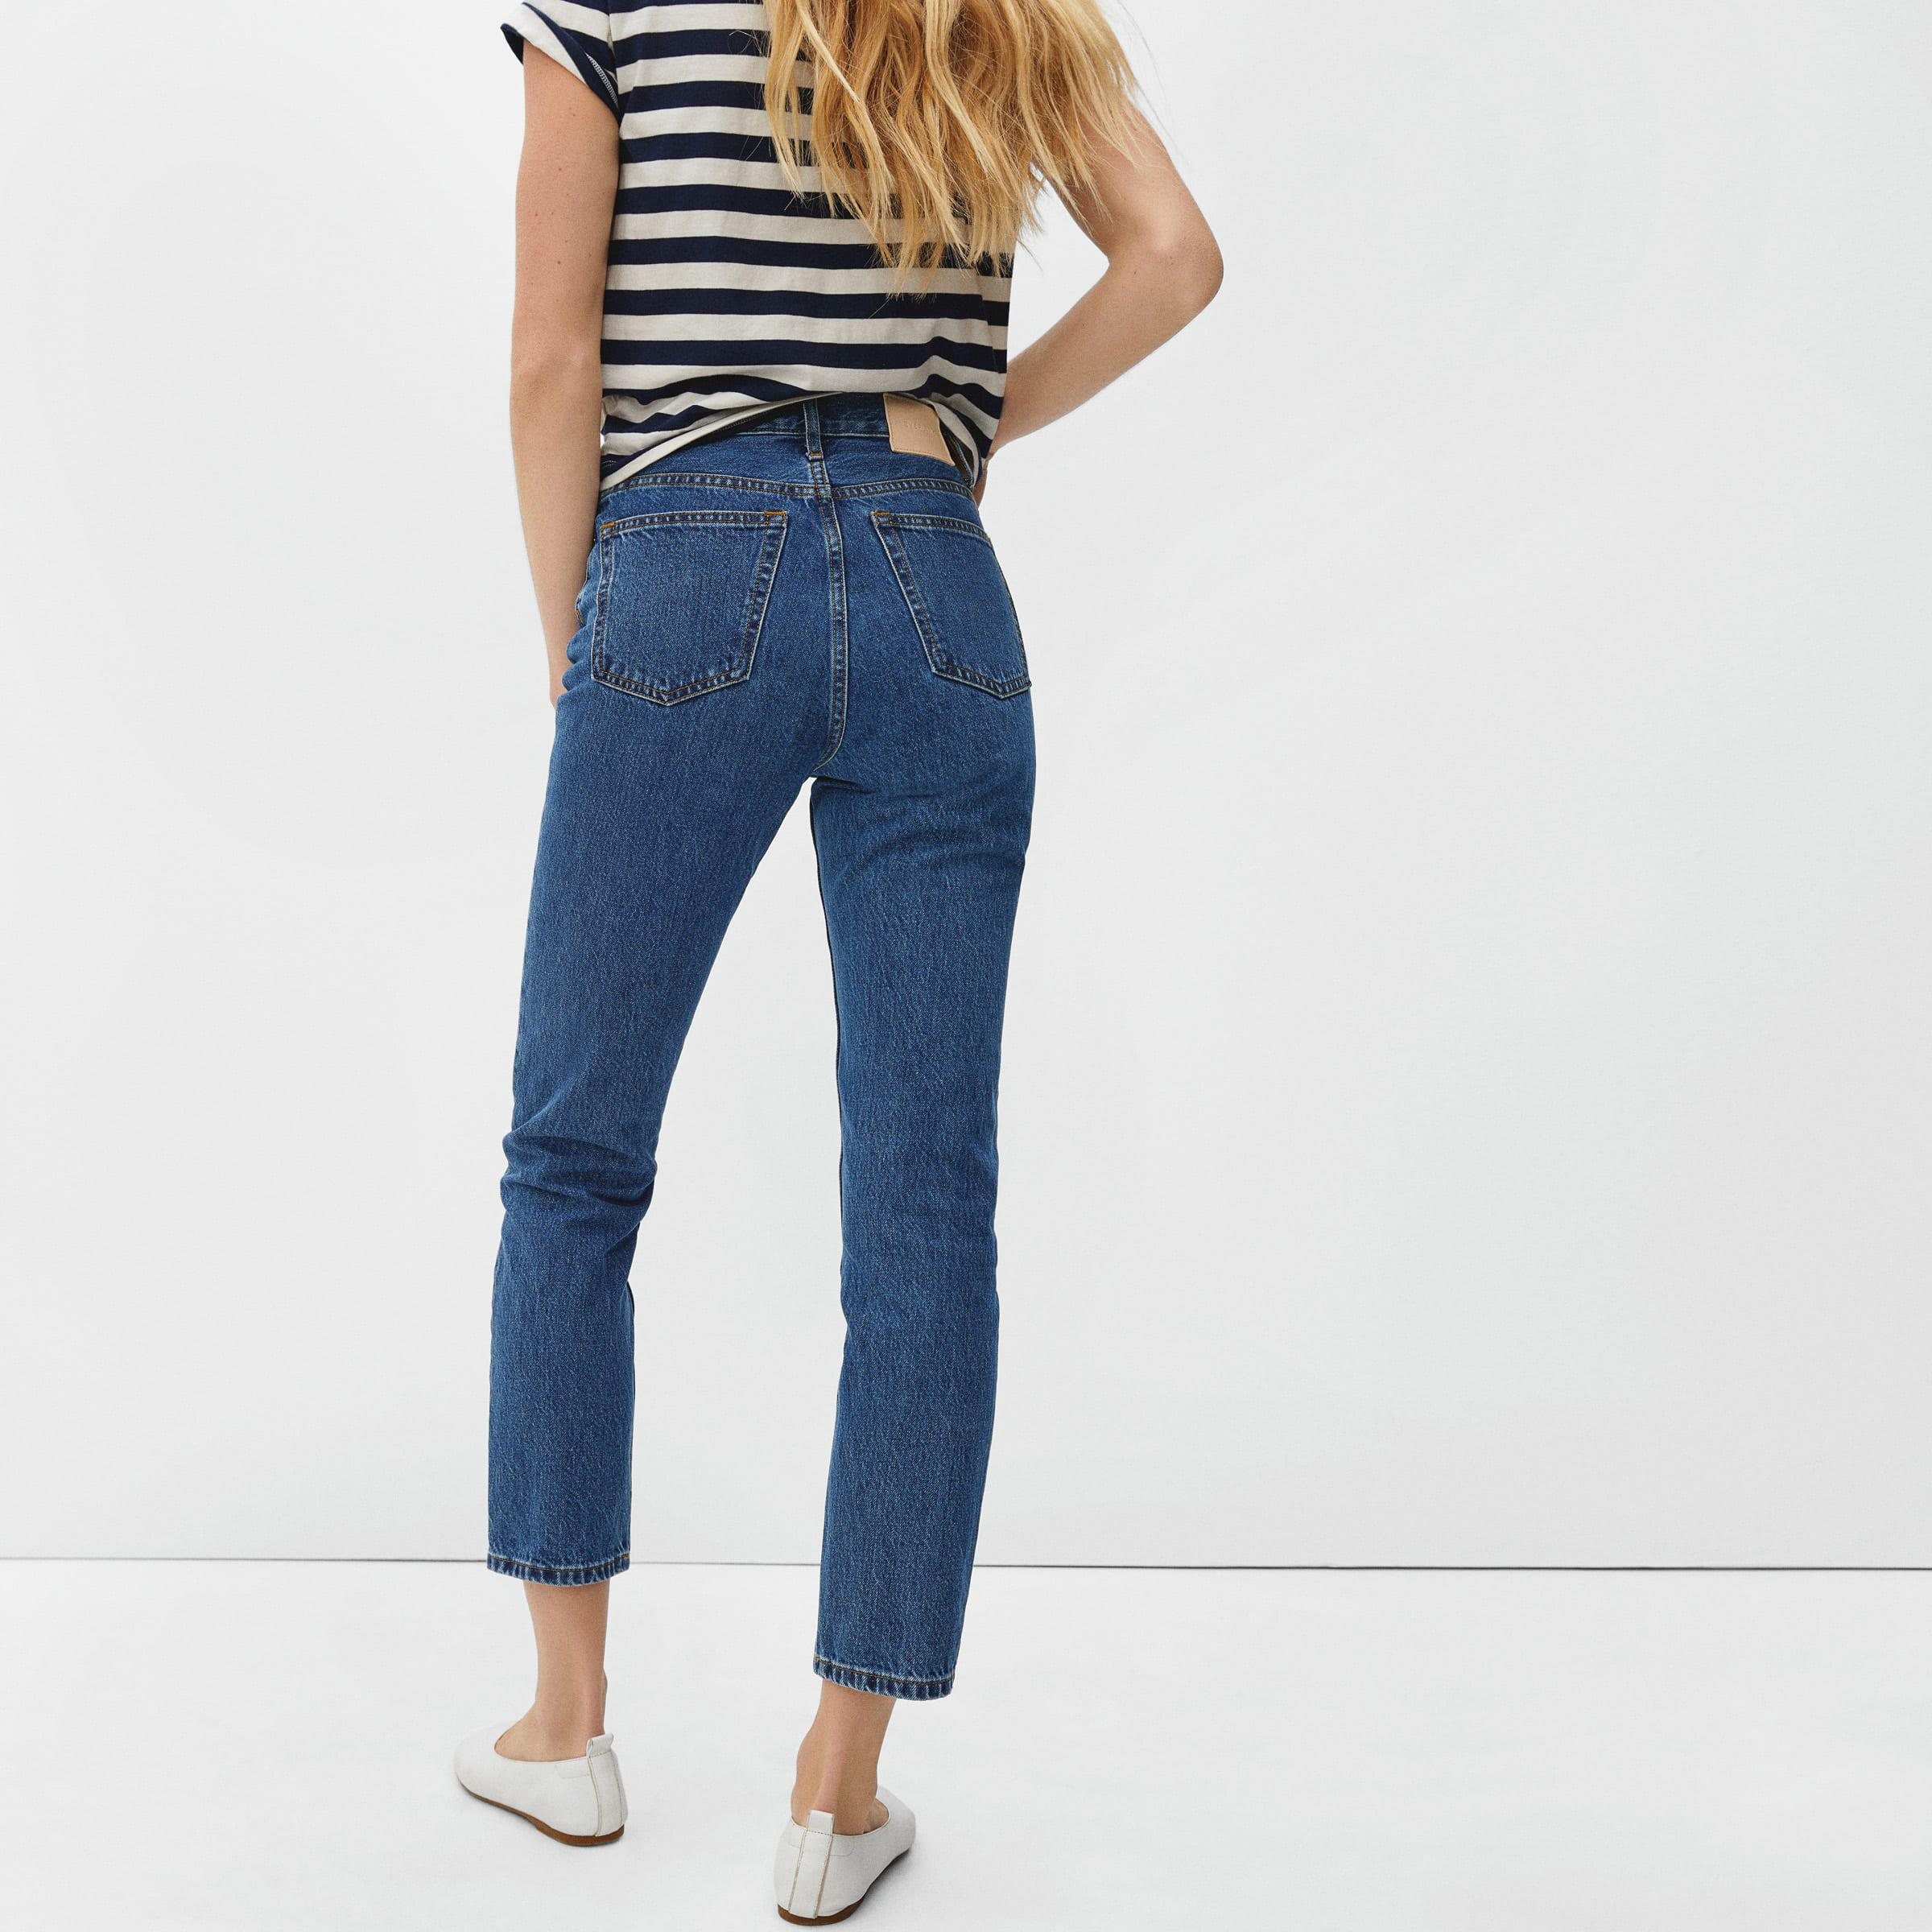 The '90s Cheeky Jean 2